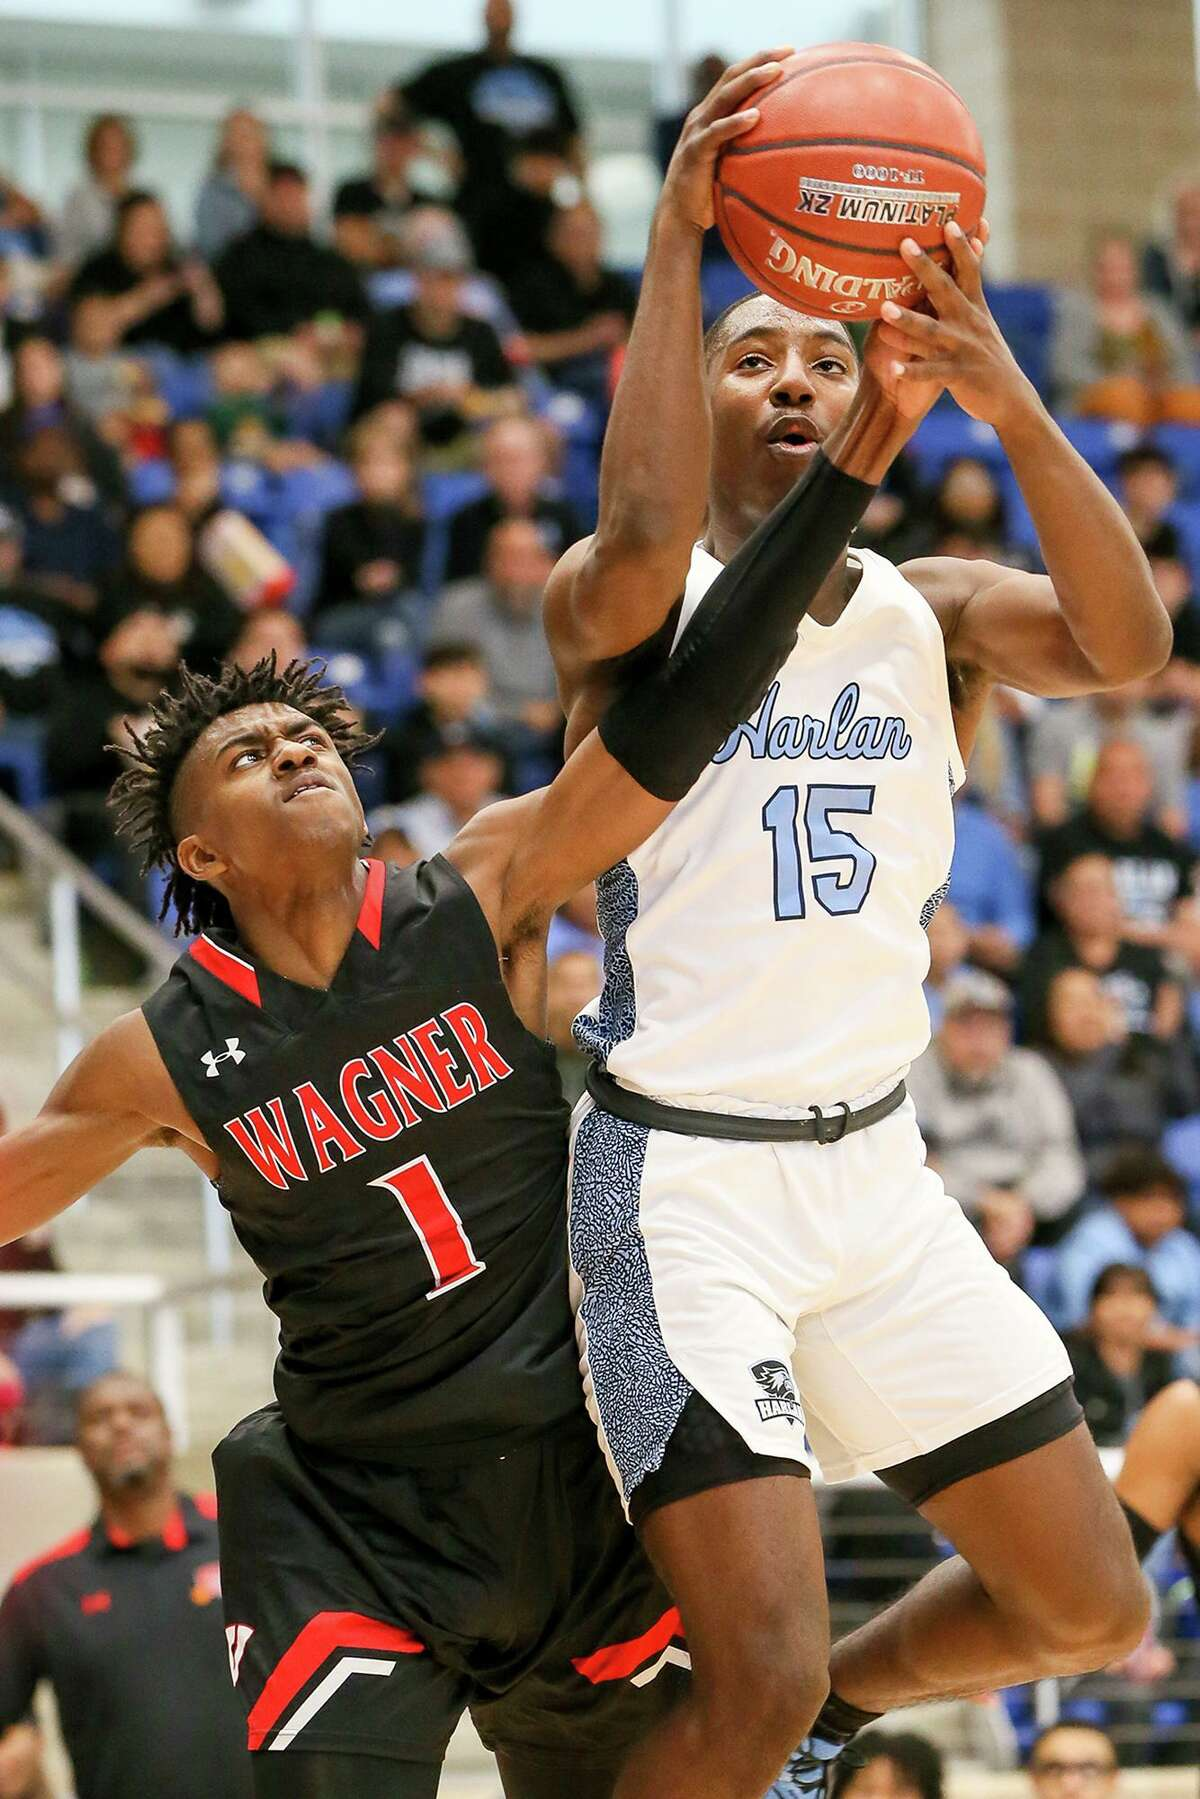 Wagner's JaSean Jackson, left, fights for a rebound with Harlan's Ja'kobe Barkley in the first half of their Class 5A Regional final game at Northside Gym on Saturday, March 7, 2020. Wagner advanced to the state tournament with a 64-48 victory over Harlan.